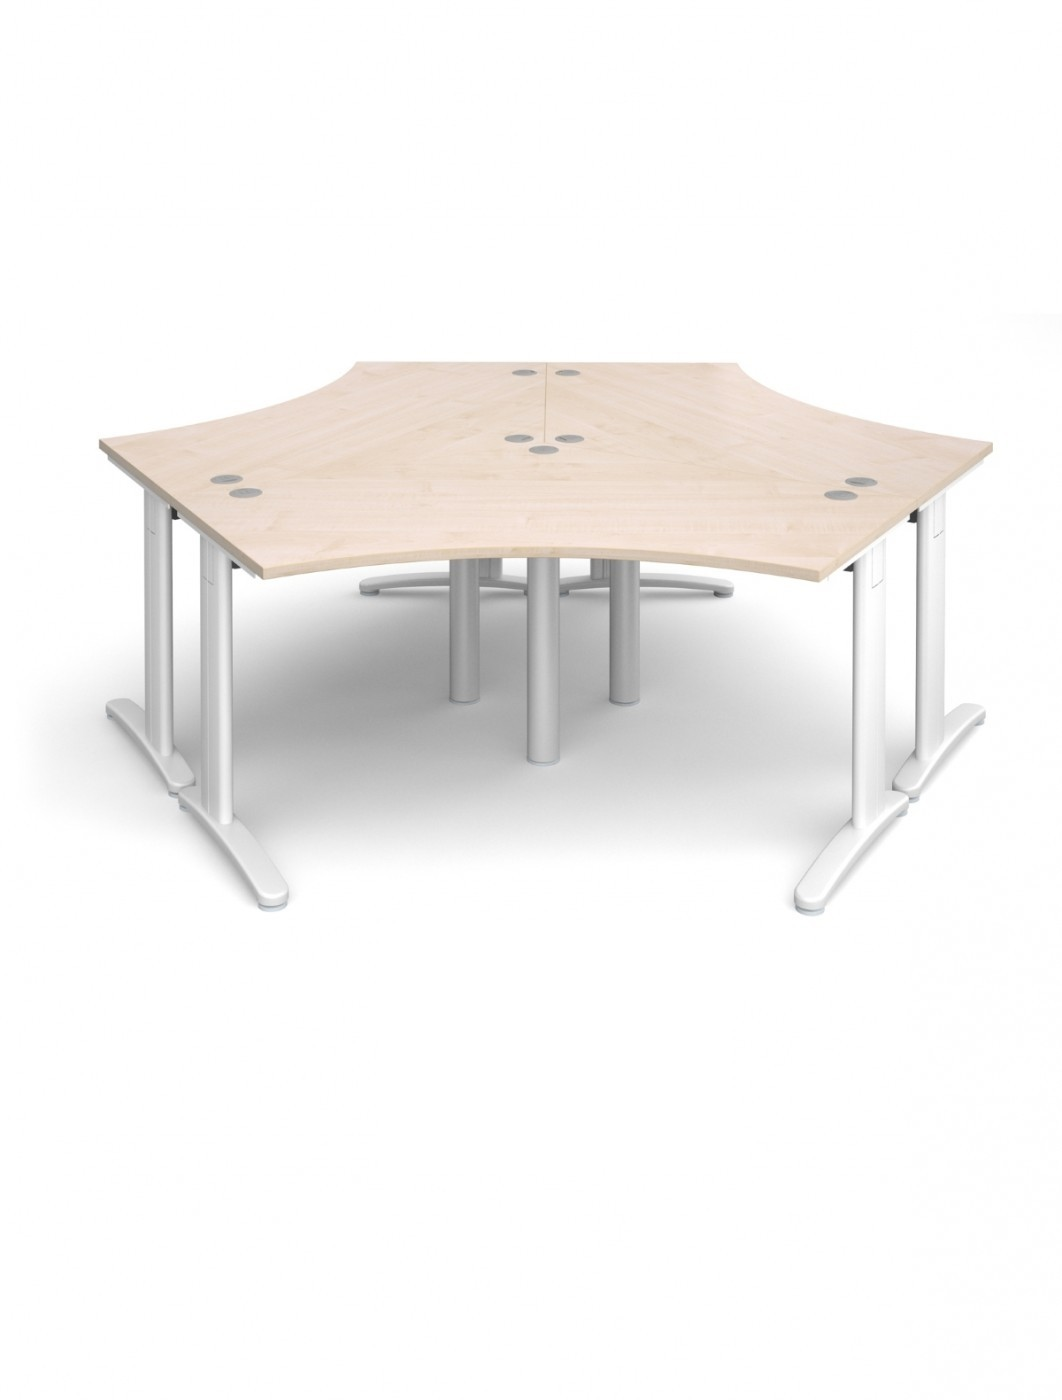 Maple Office Desk Dams TR10 120 Degree Desk Cluster T120M   Enlarged View